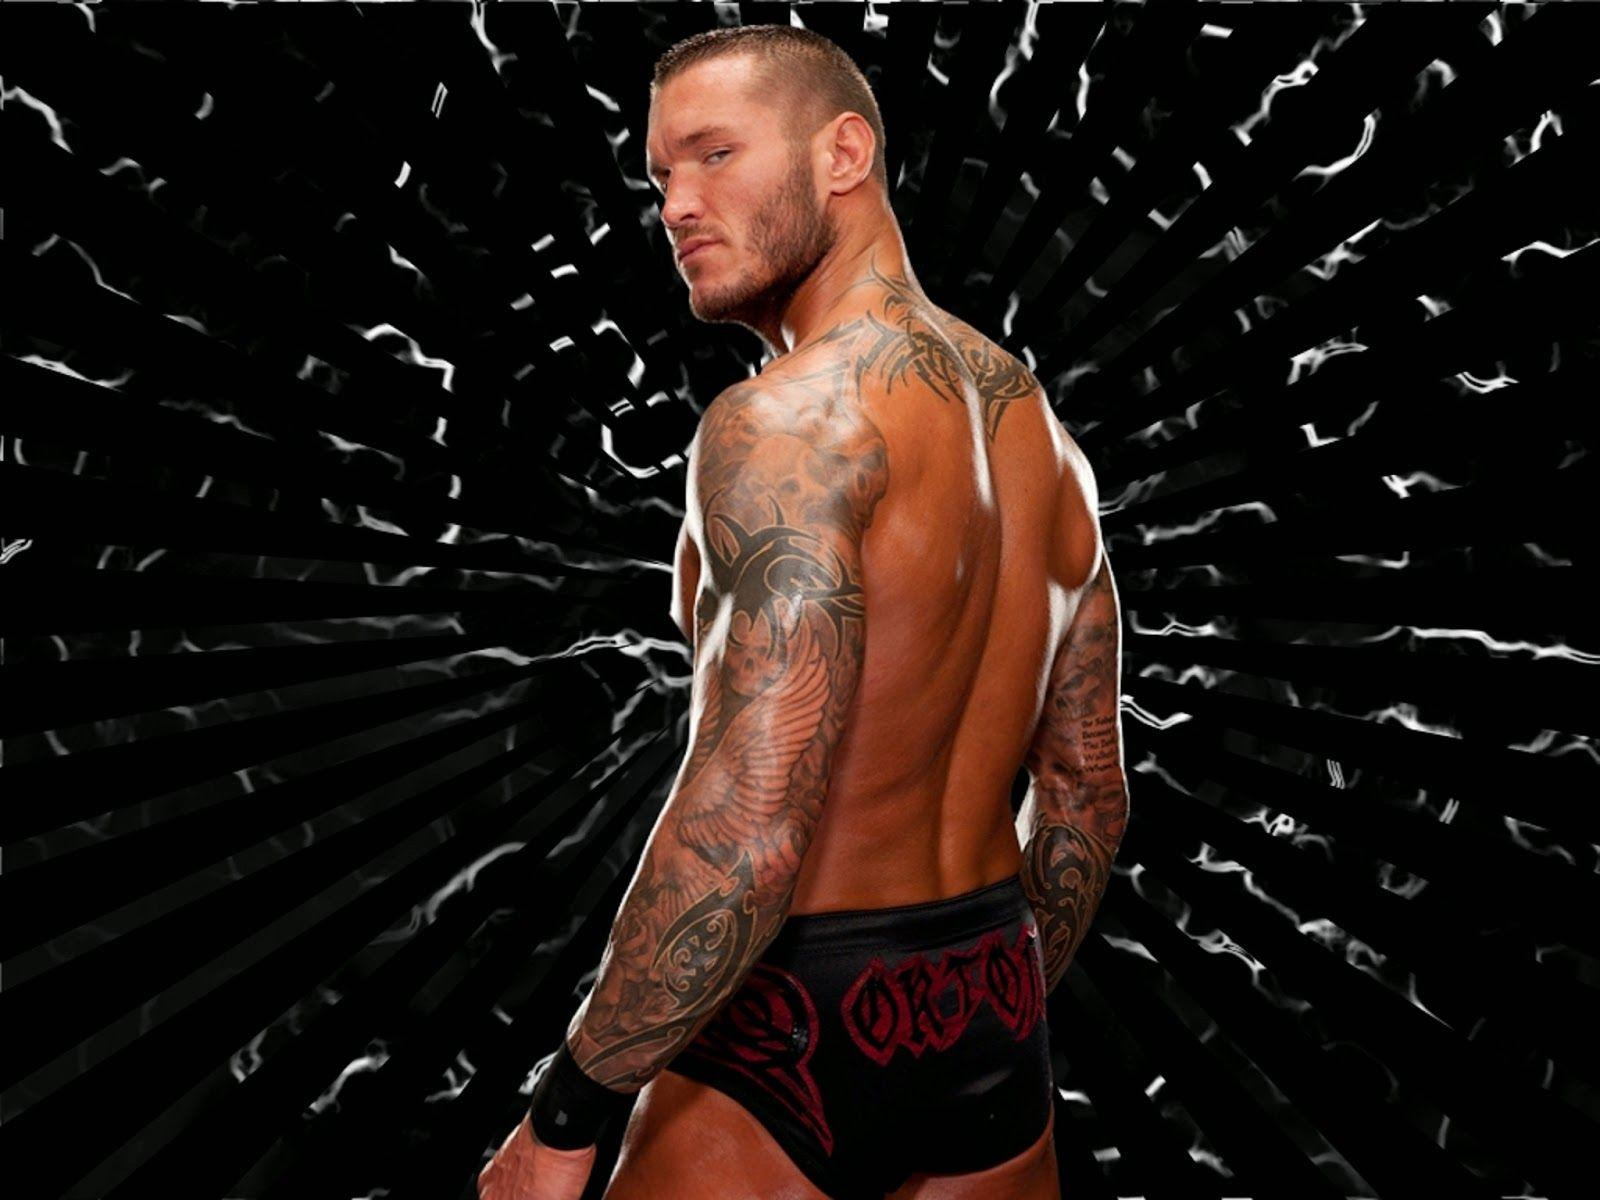 Randy Orton Hd Free Wallpapers | WWE HD WALLPAPER FREE DOWNLOAD